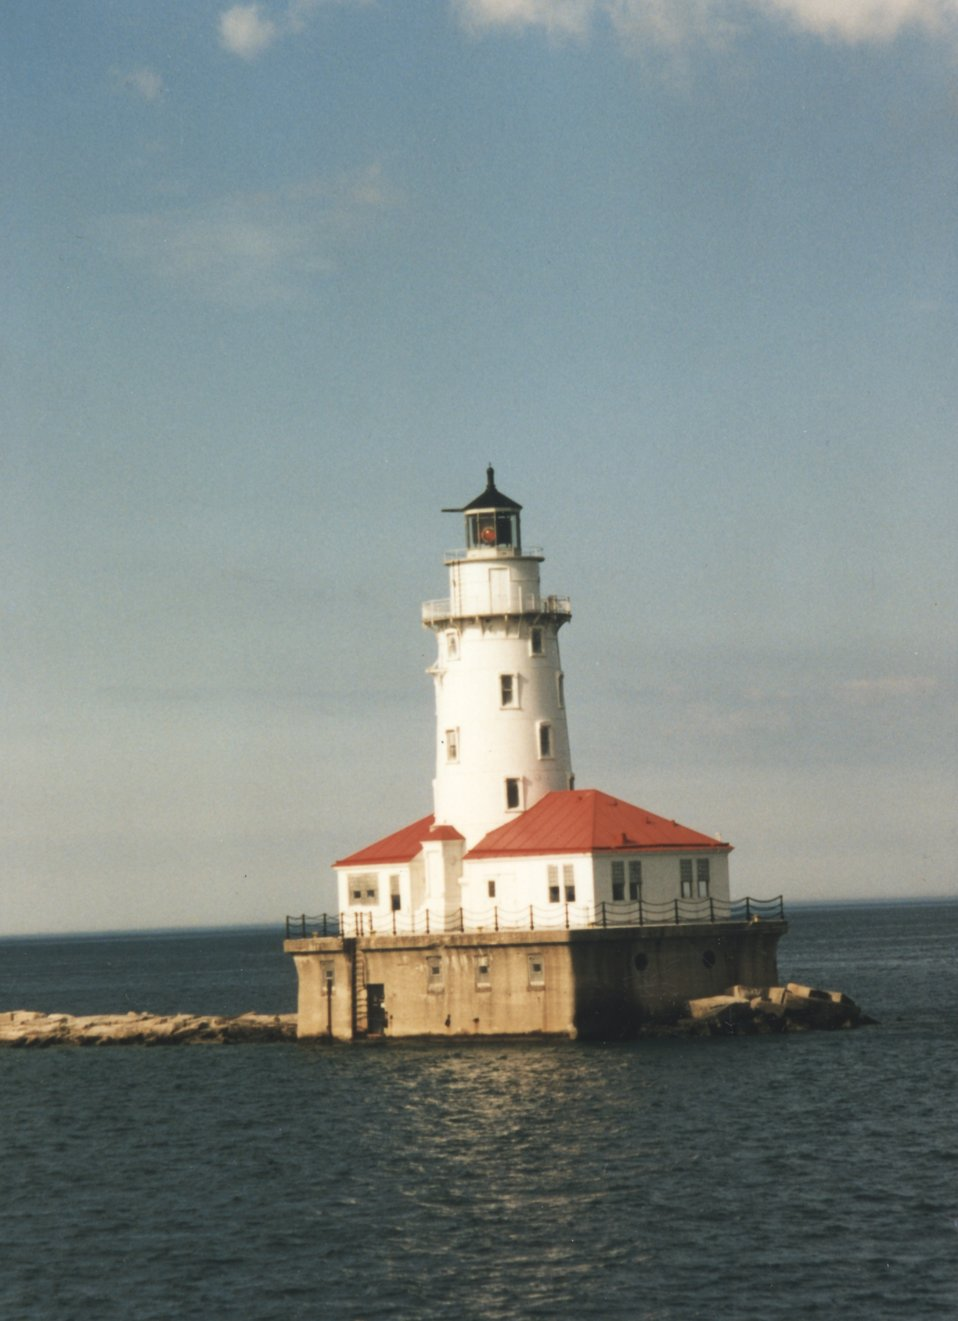 Chicago Breakwater Lighthouse on Lake Michigan